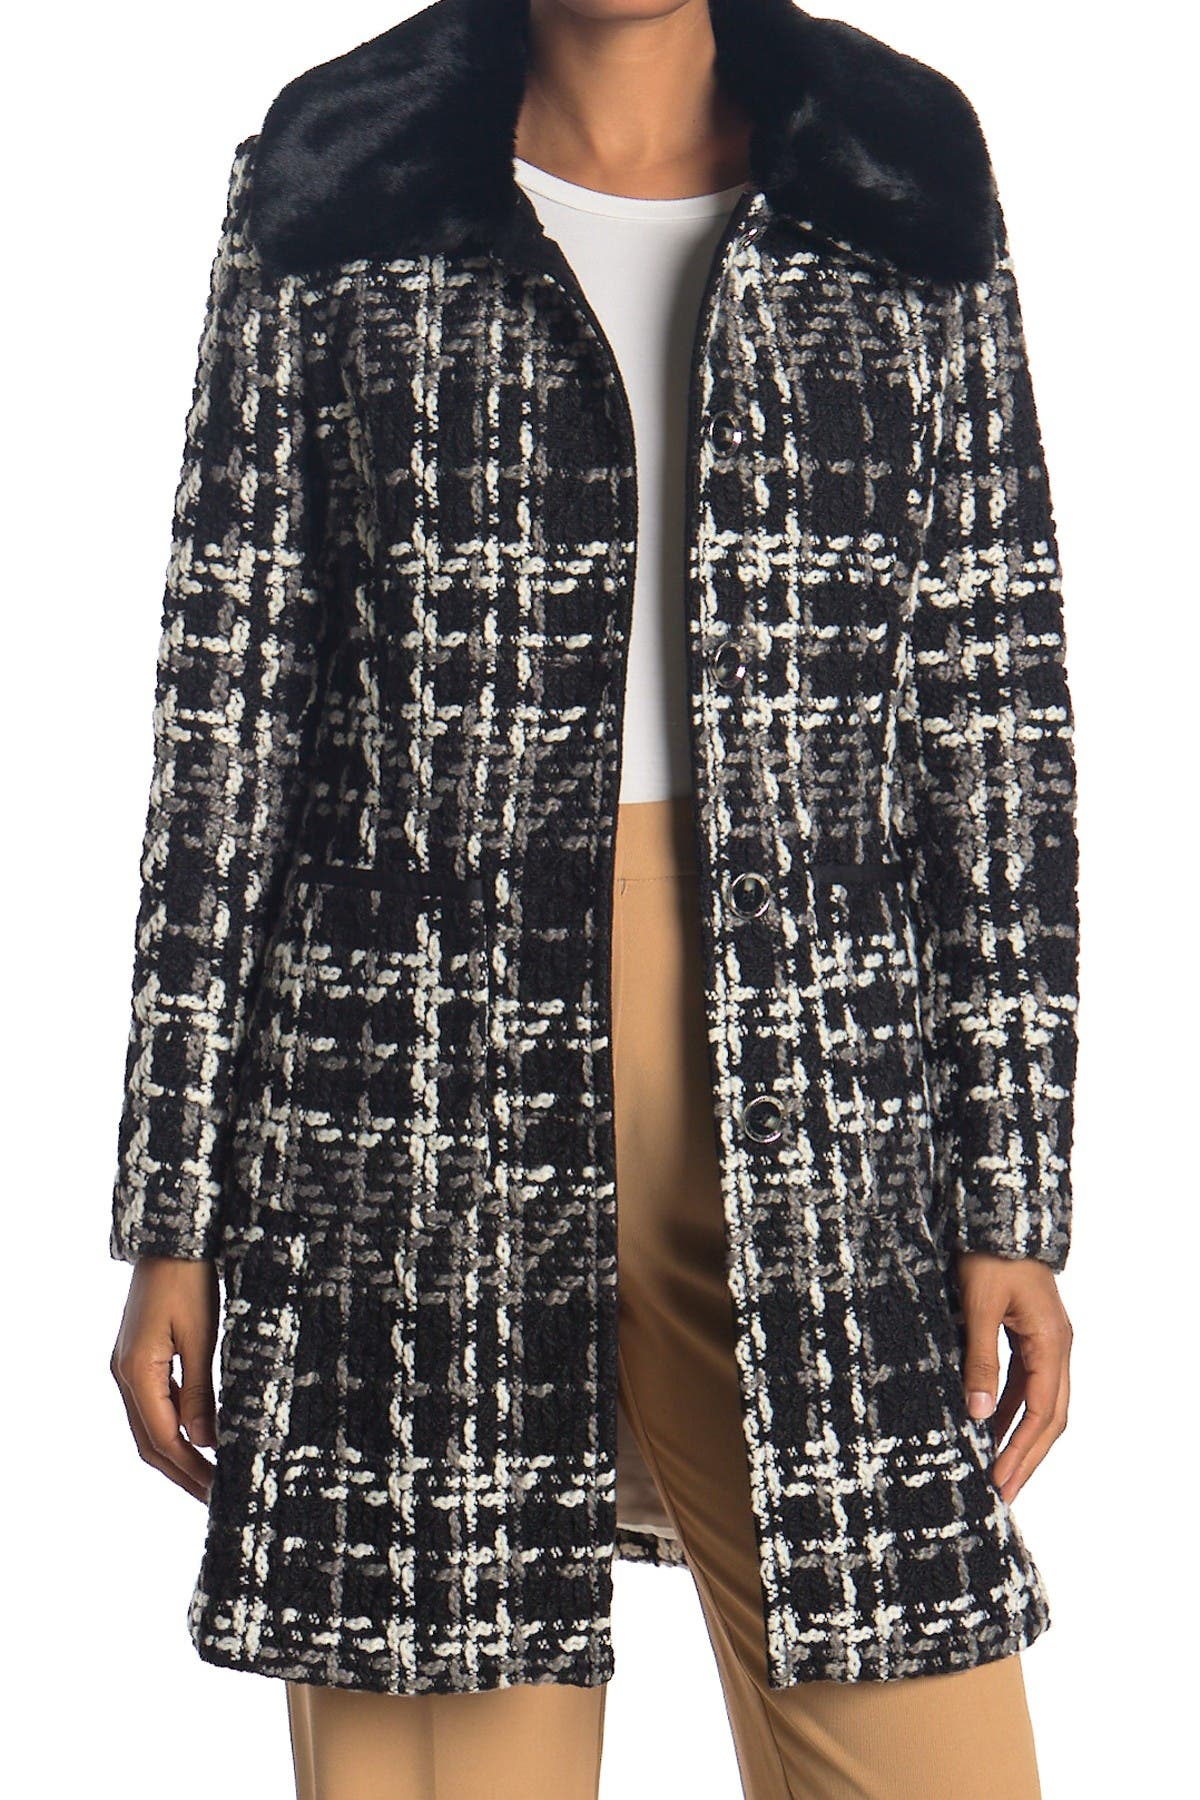 Image of Laundry By Shelli Segal Basket Weave Faux Fur Wool Jacket